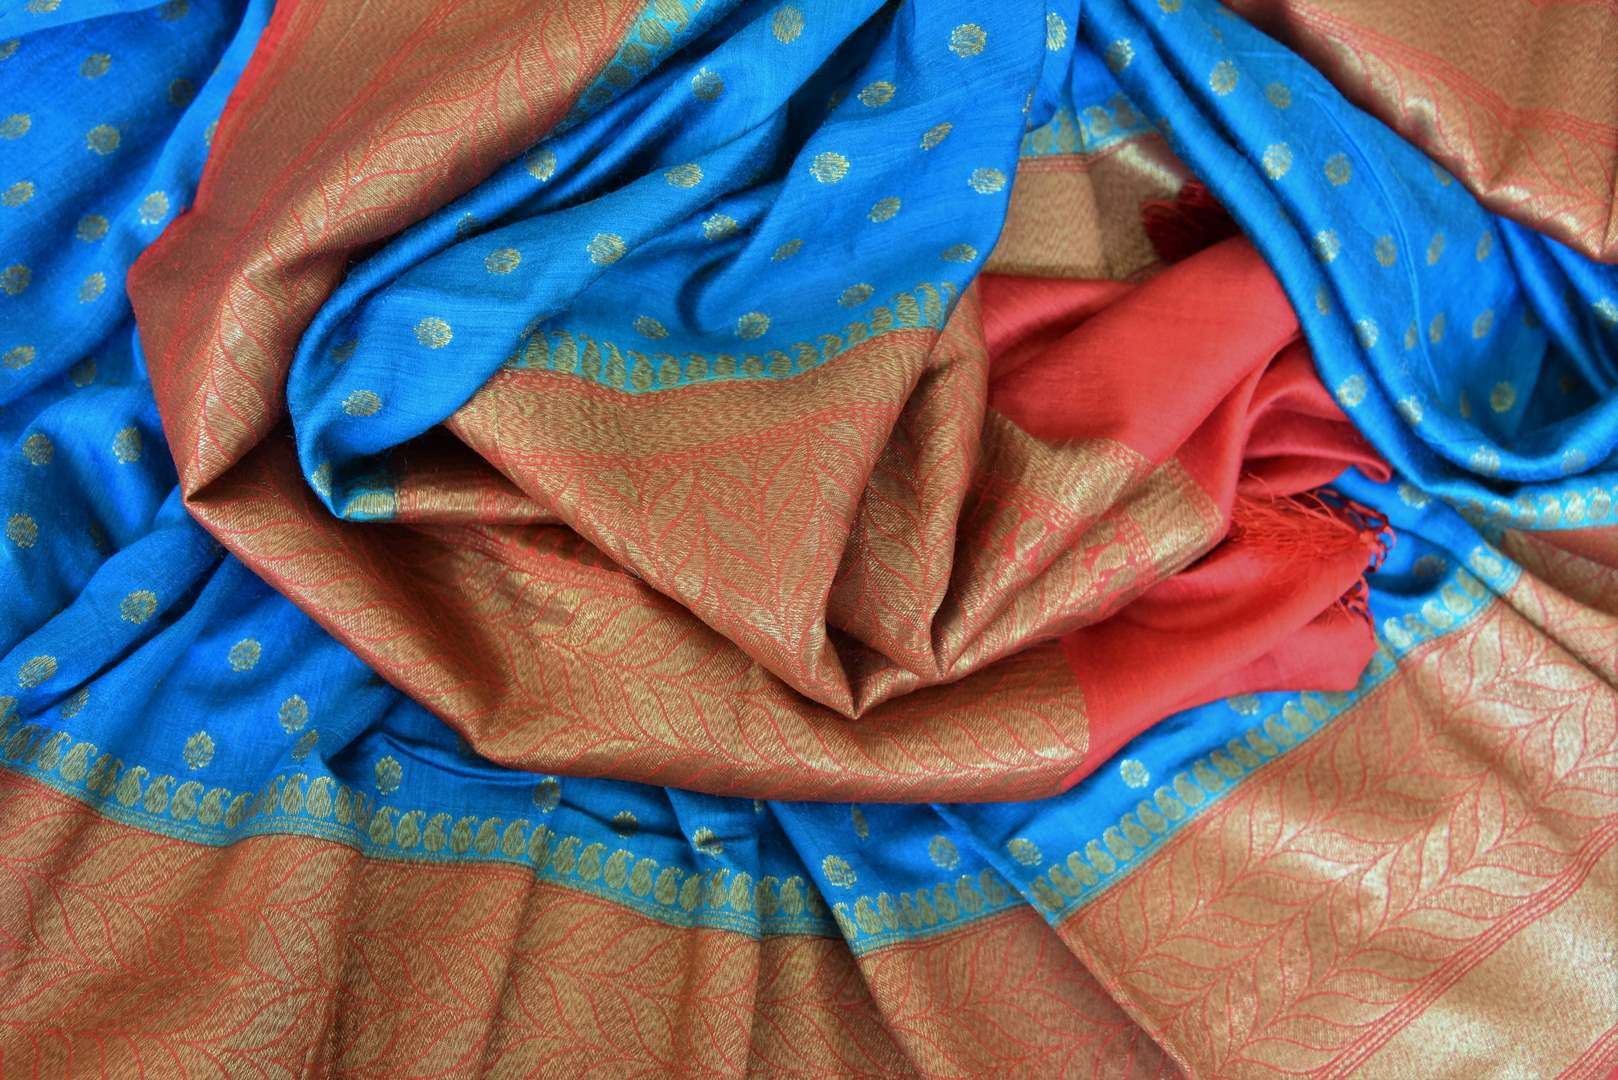 Buy blue tussar Benarasi saree online in USA with red zari border and zari buta. Make an elegant ethnic fashion statement at parties, weddings and special occasions with a splendid collection of Indian designer sarees, Benarasi saris, wedding sarees from Pure Elegance Indian clothing store in USA or shop online.-details